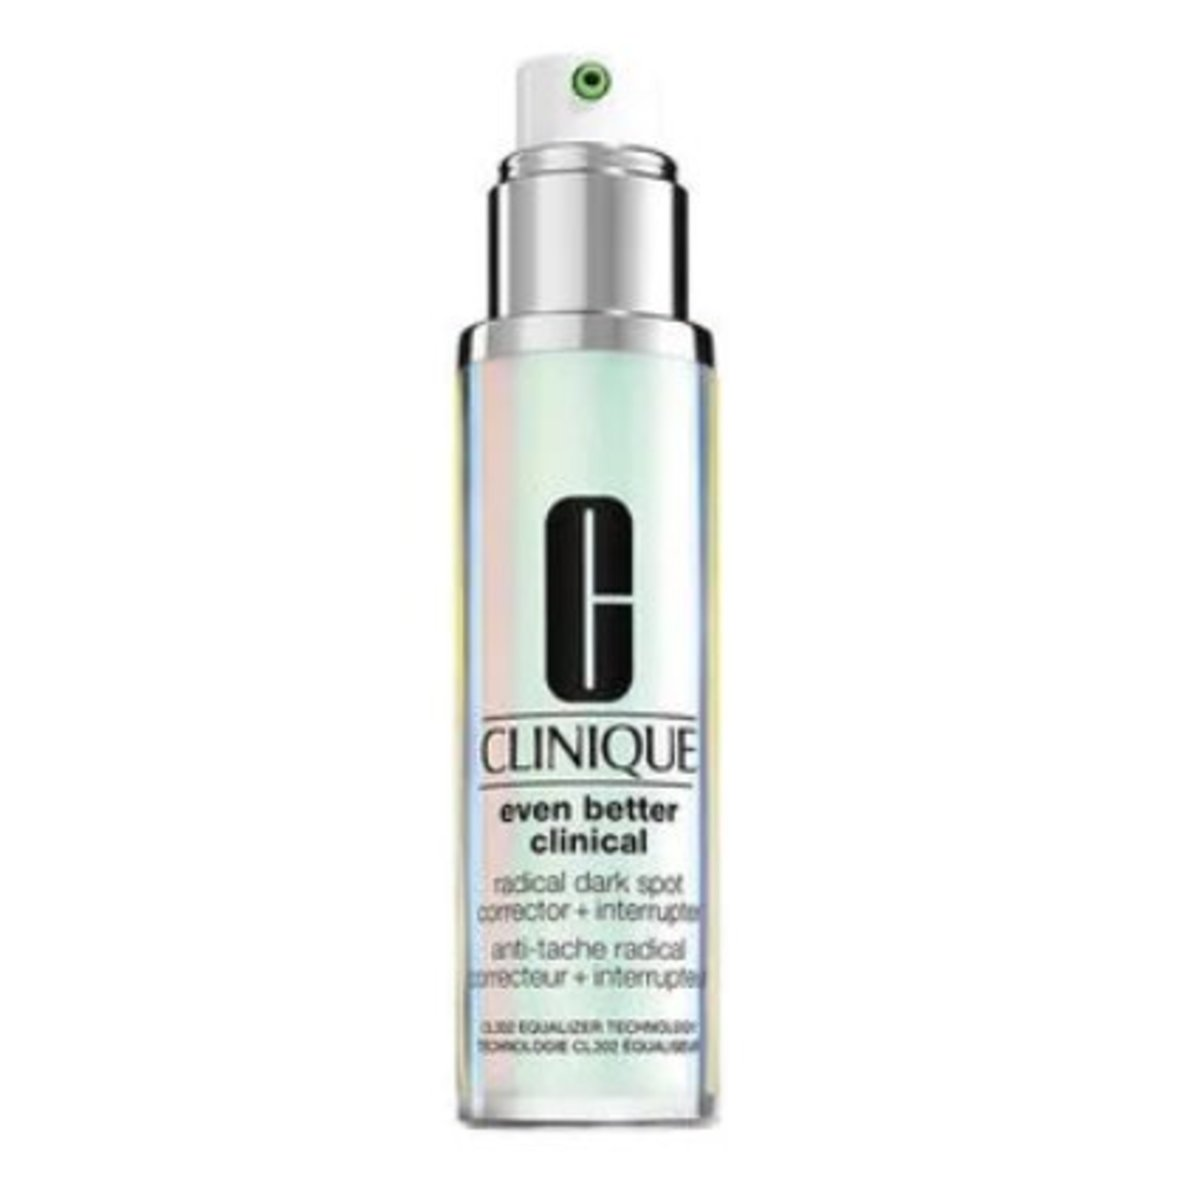 Even Better Clinical Radical Dark Spot Corrector + Interrupter 50ml (Parallel Import)